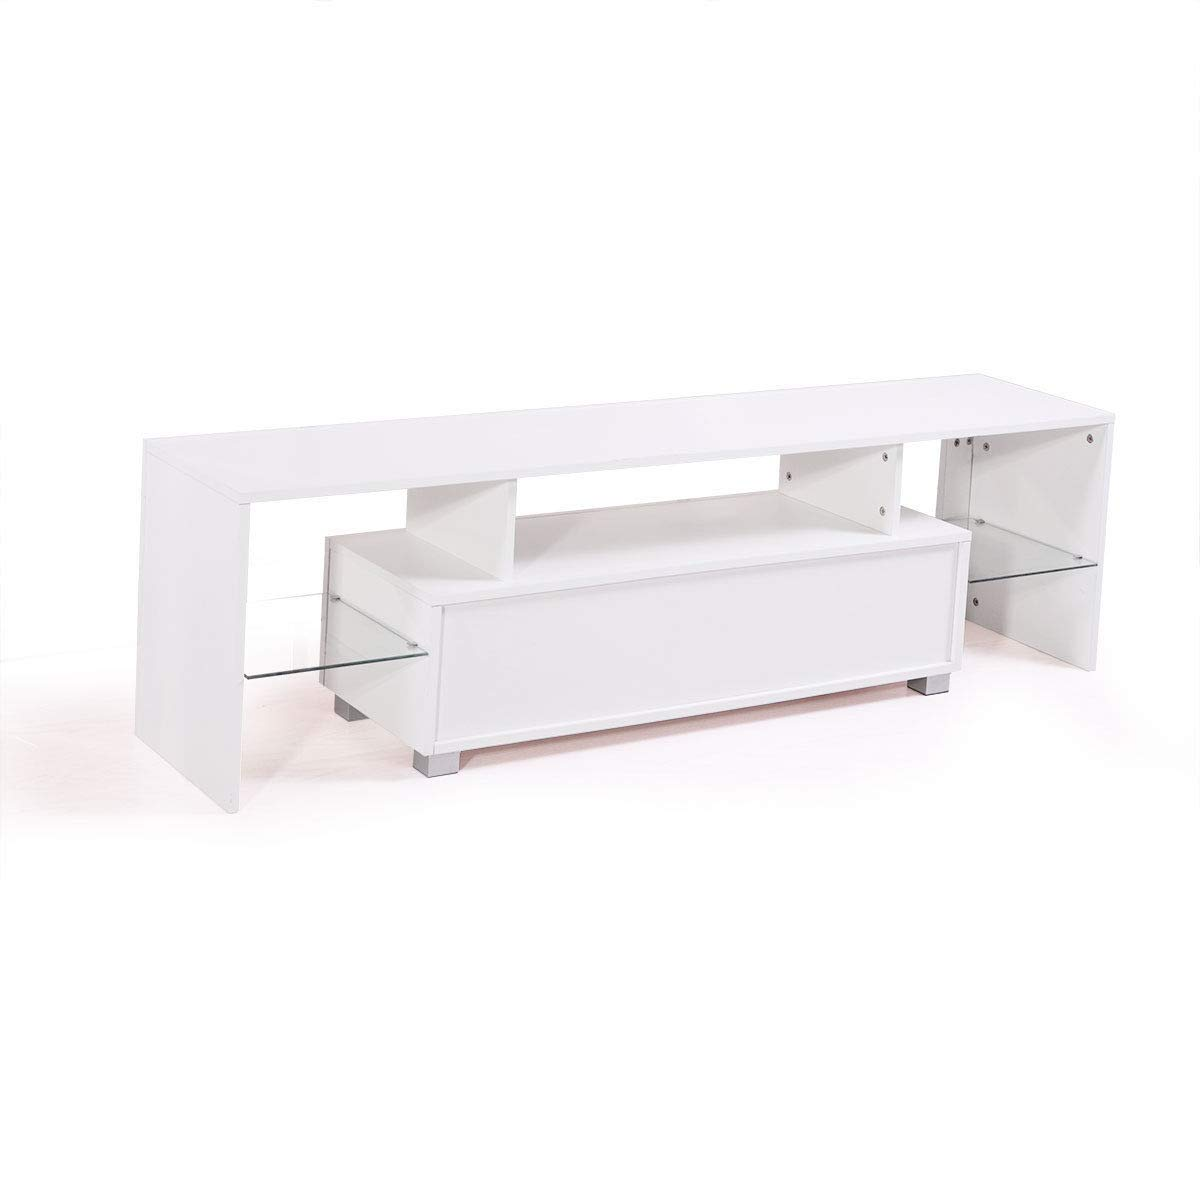 "Lapha'' 63"" Inch White TV Stand Cabinet Console Furniture Led Unit Shelves Media Gloss Storage with LED Light Shelve Drawer Console High Gloss"